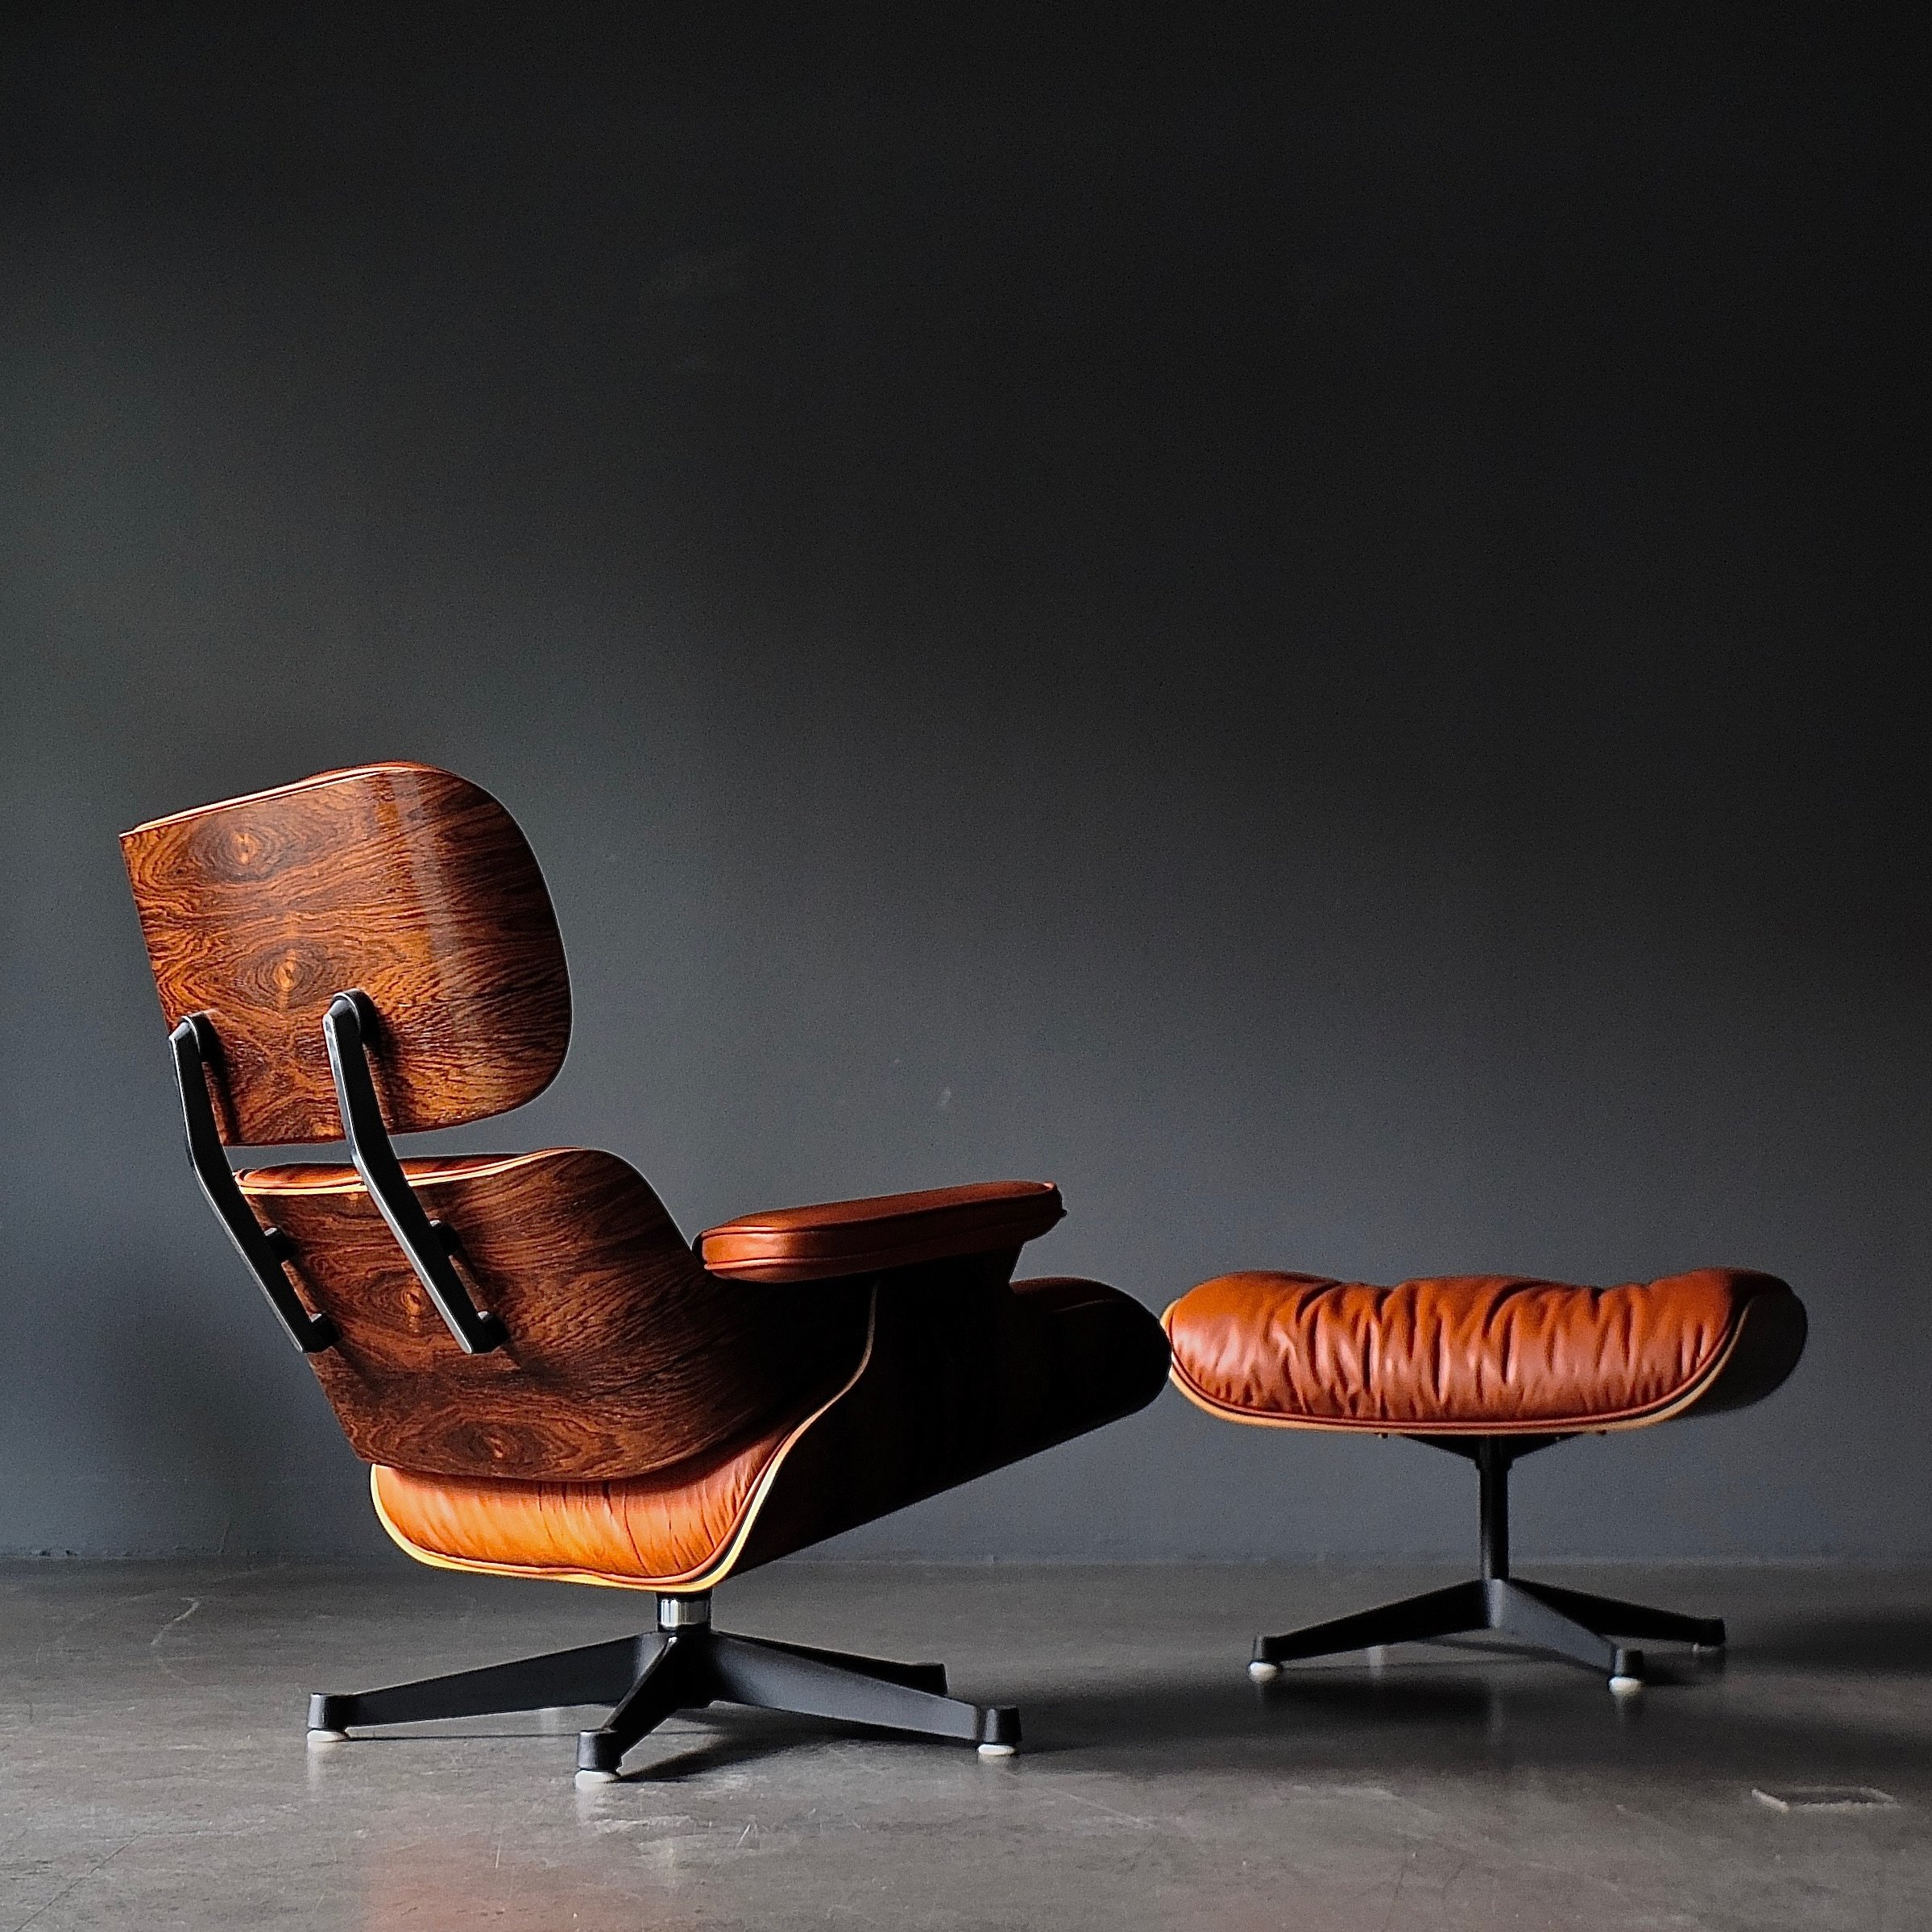 Superb Brazilian Rosewood Eames Lounge Chair Ottoman 1970S 106635 Ibusinesslaw Wood Chair Design Ideas Ibusinesslaworg